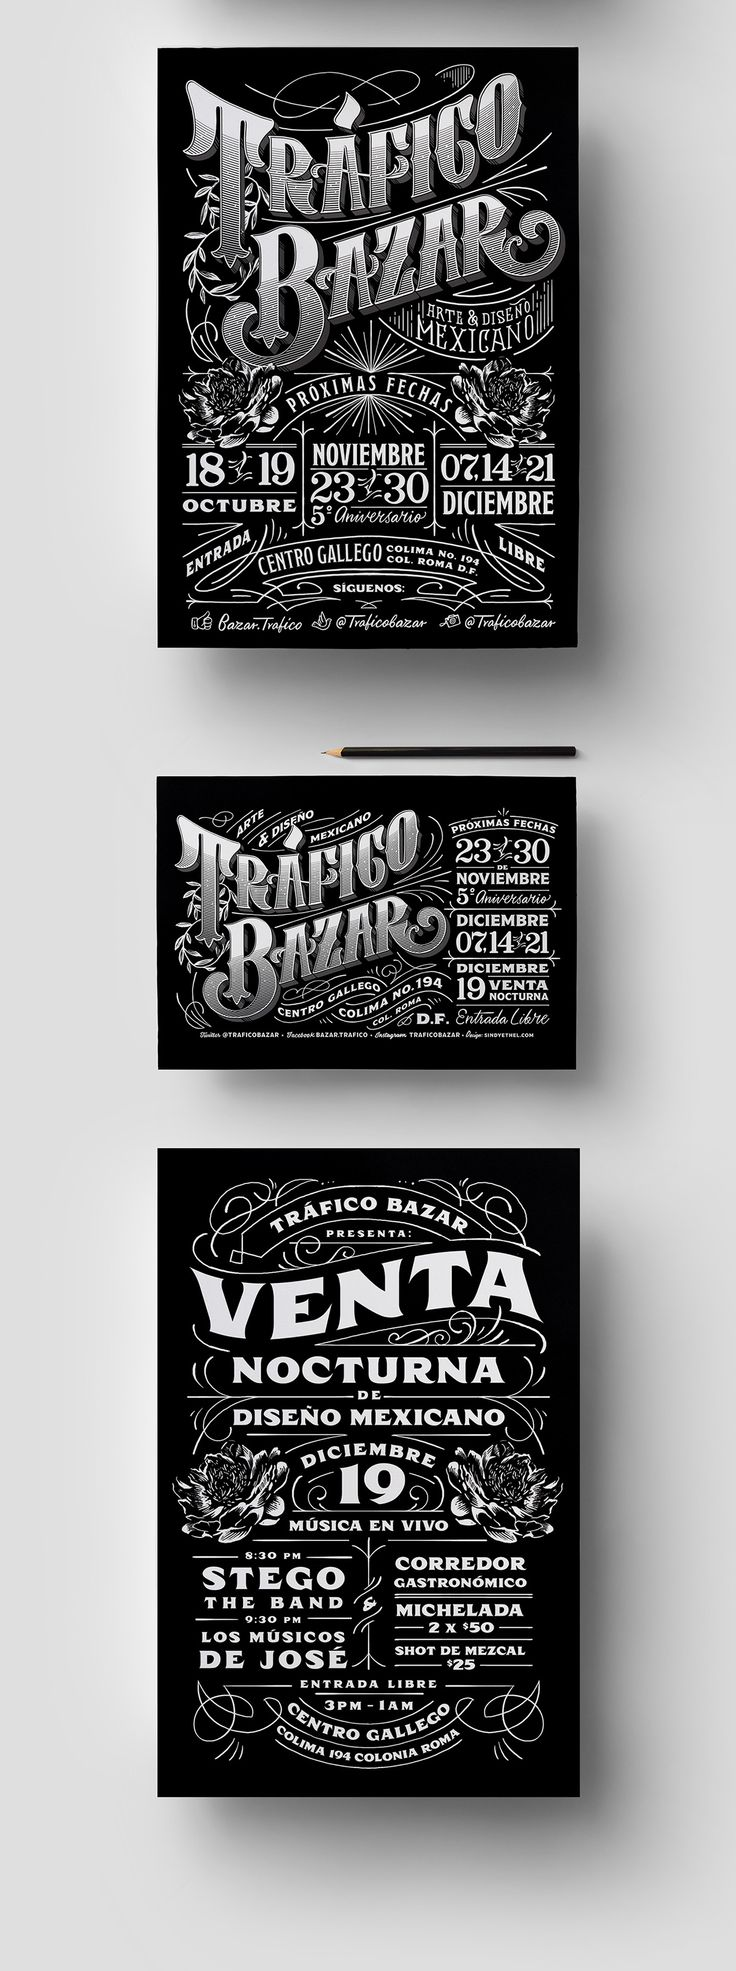 Design & Lettering on Typography Served